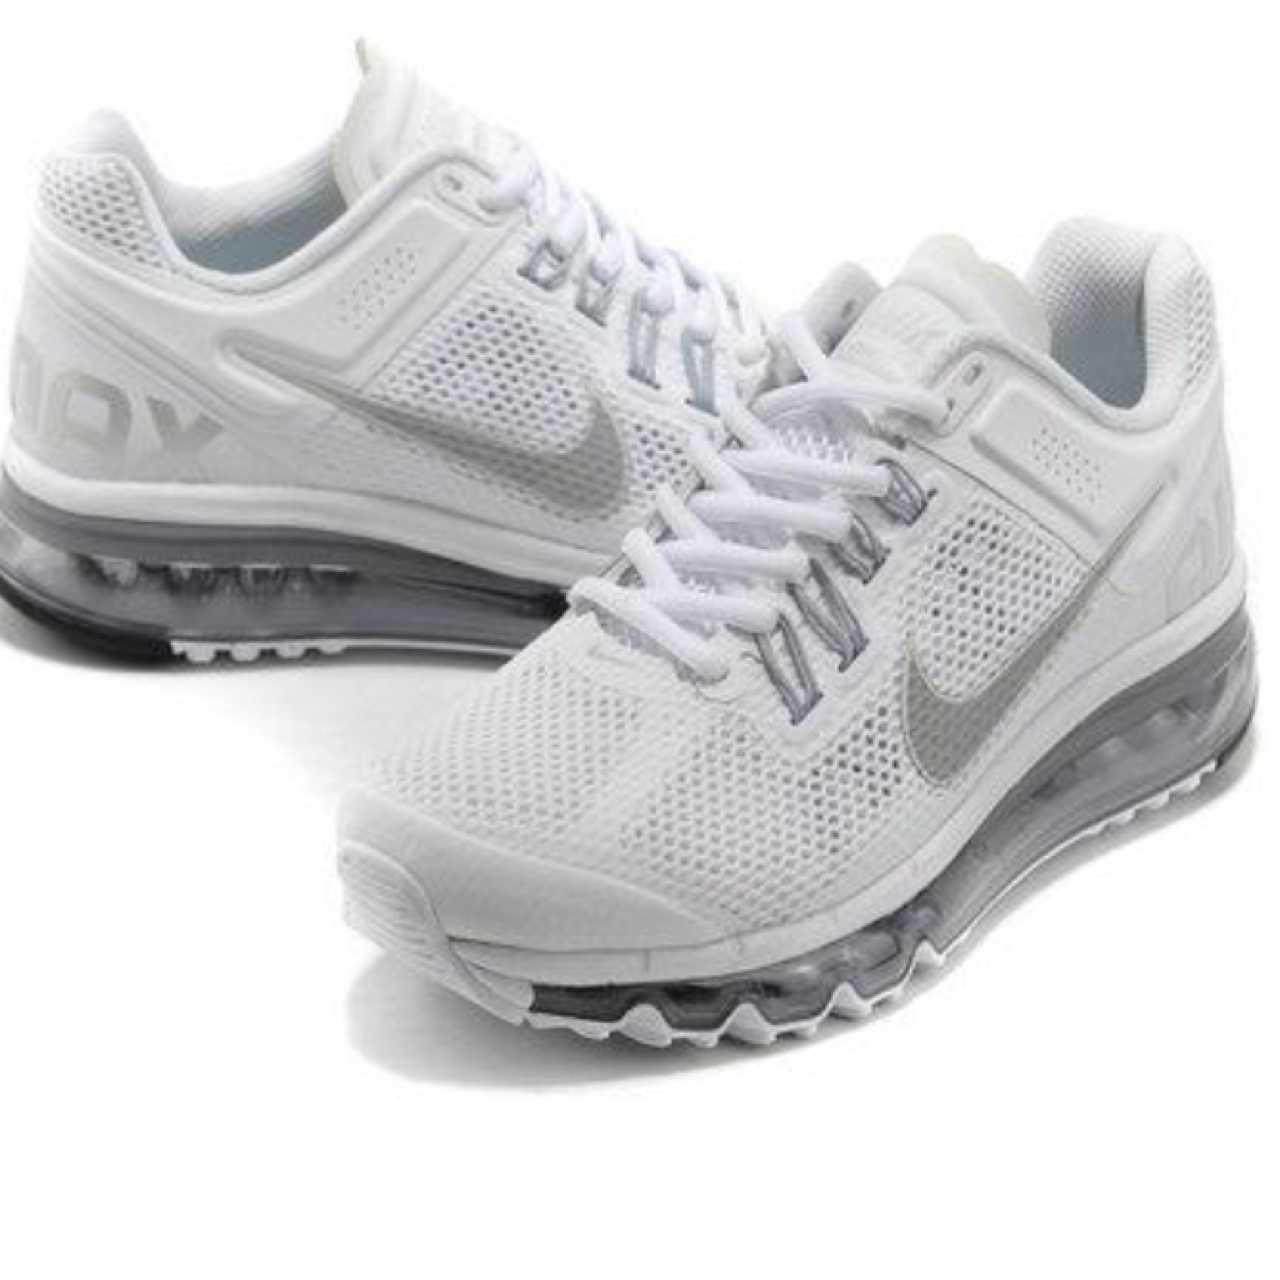 BRAND NEW NIKE AIR MAX 2013 WHITE SILVER more